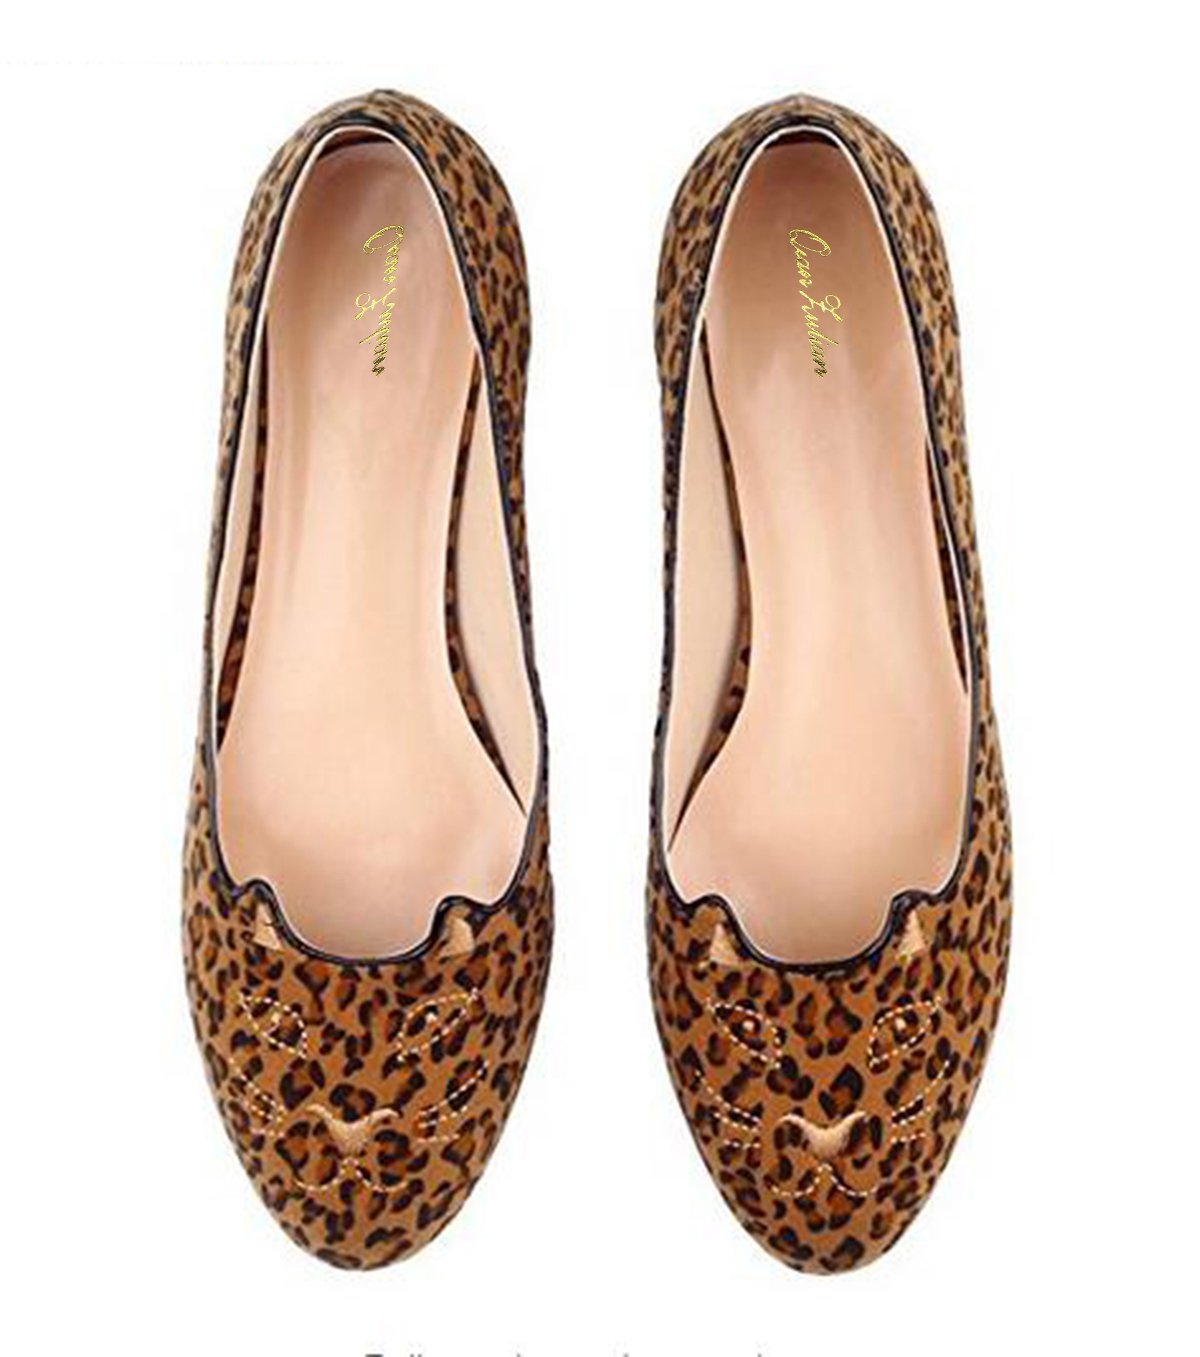 QianZuLian Womens Flats Cat Shape Pumps Round head Slip On Dress Shoes Comfort for Home Leisure On foot B0757XKG6X 7 B(M) US|Leopard